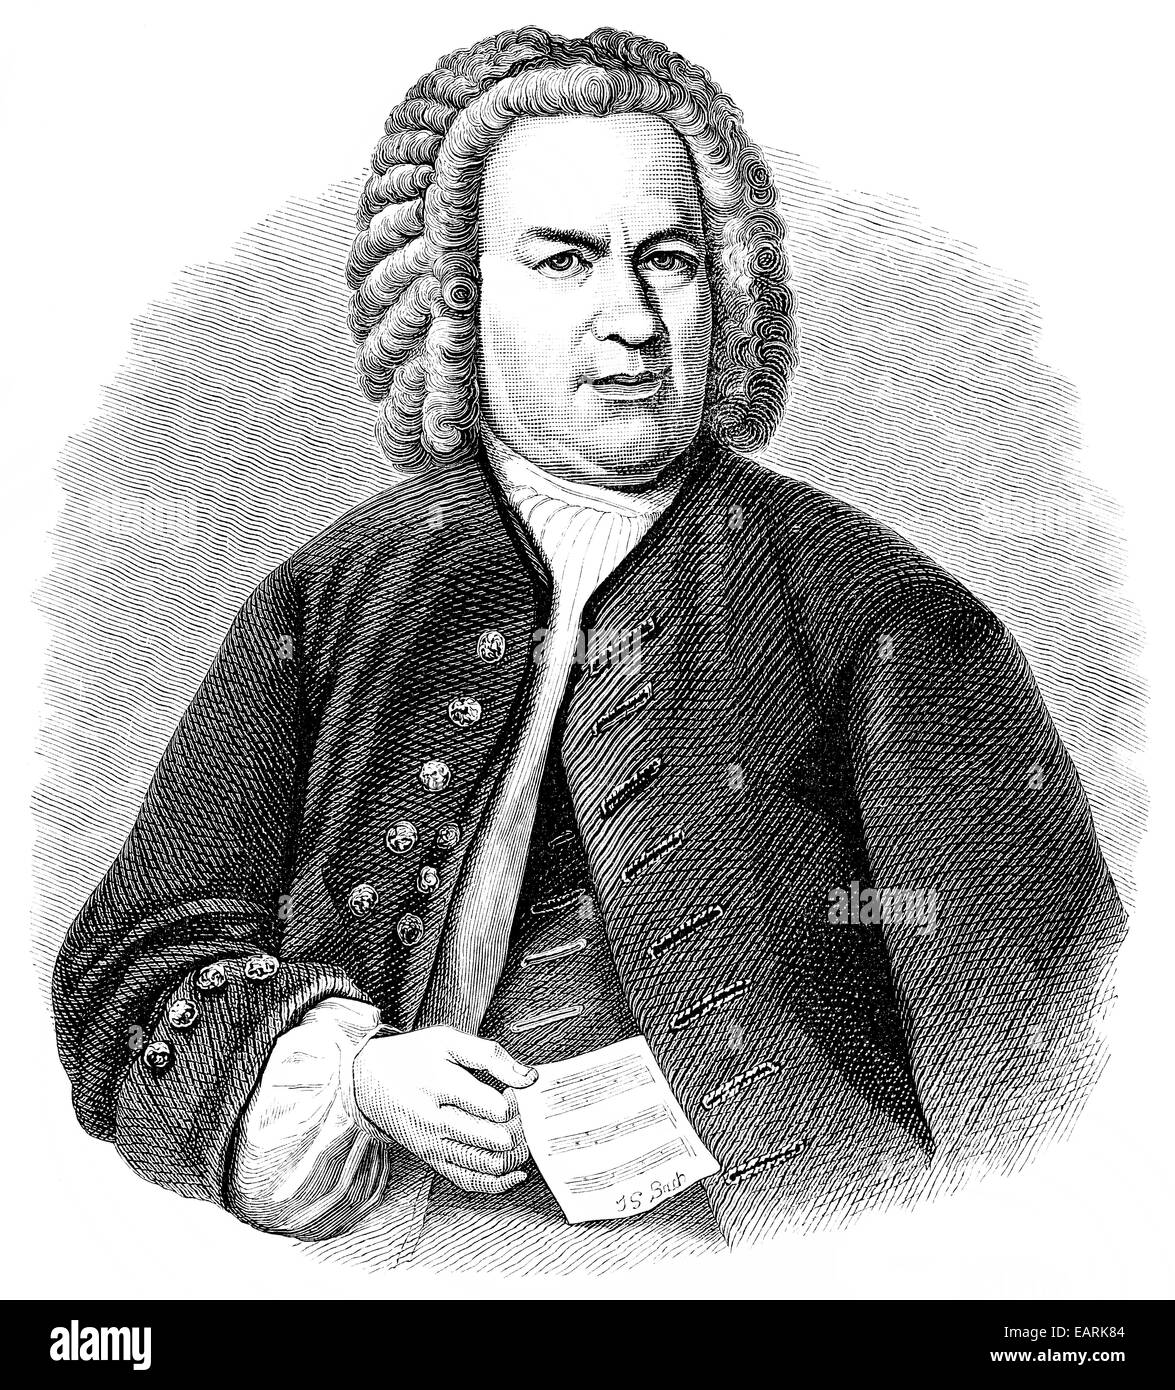 a biography of johann sebastian bach a german composer Johann sebastian bach (31 march [os 21 march] 1685 - 28 july 1750) was a german composer and musician of the baroque periodhe is known for instrumental compositions such as the brandenburg concertos and the goldberg variations, and vocal music such as the st matthew passion and the mass in b minor.